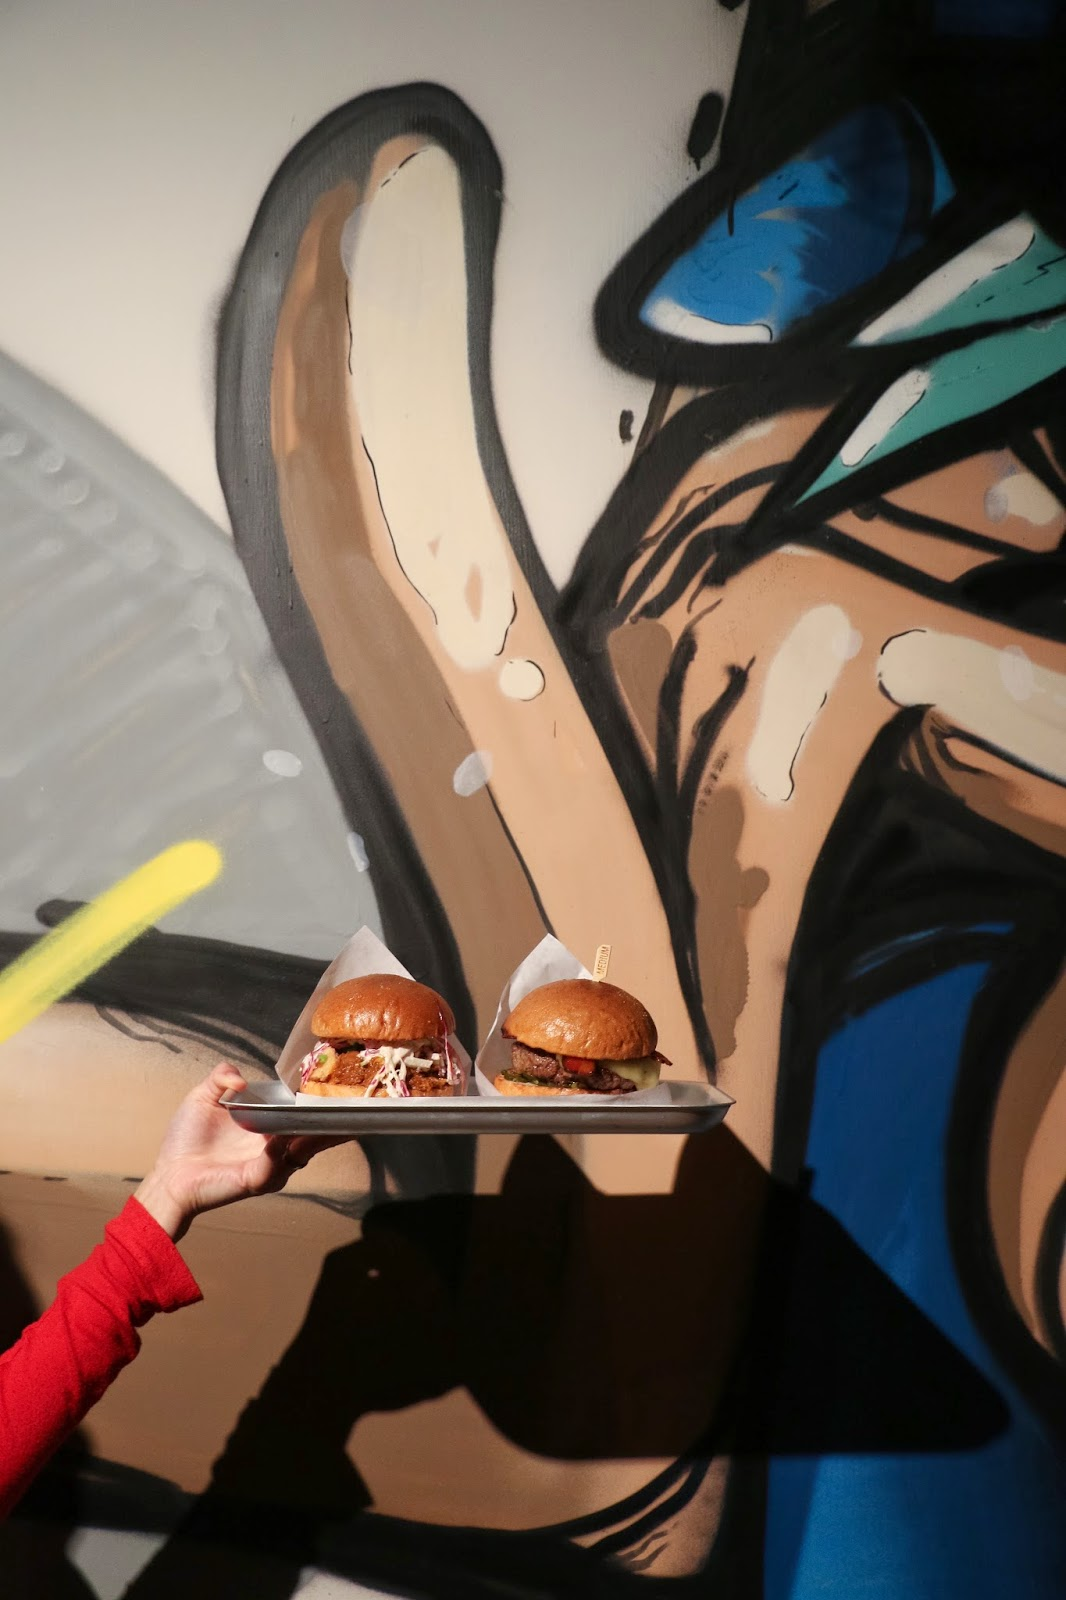 Beef & Liberty PMQ Pop-up, Notorious P.I.G, Bacon Cheese Burgers